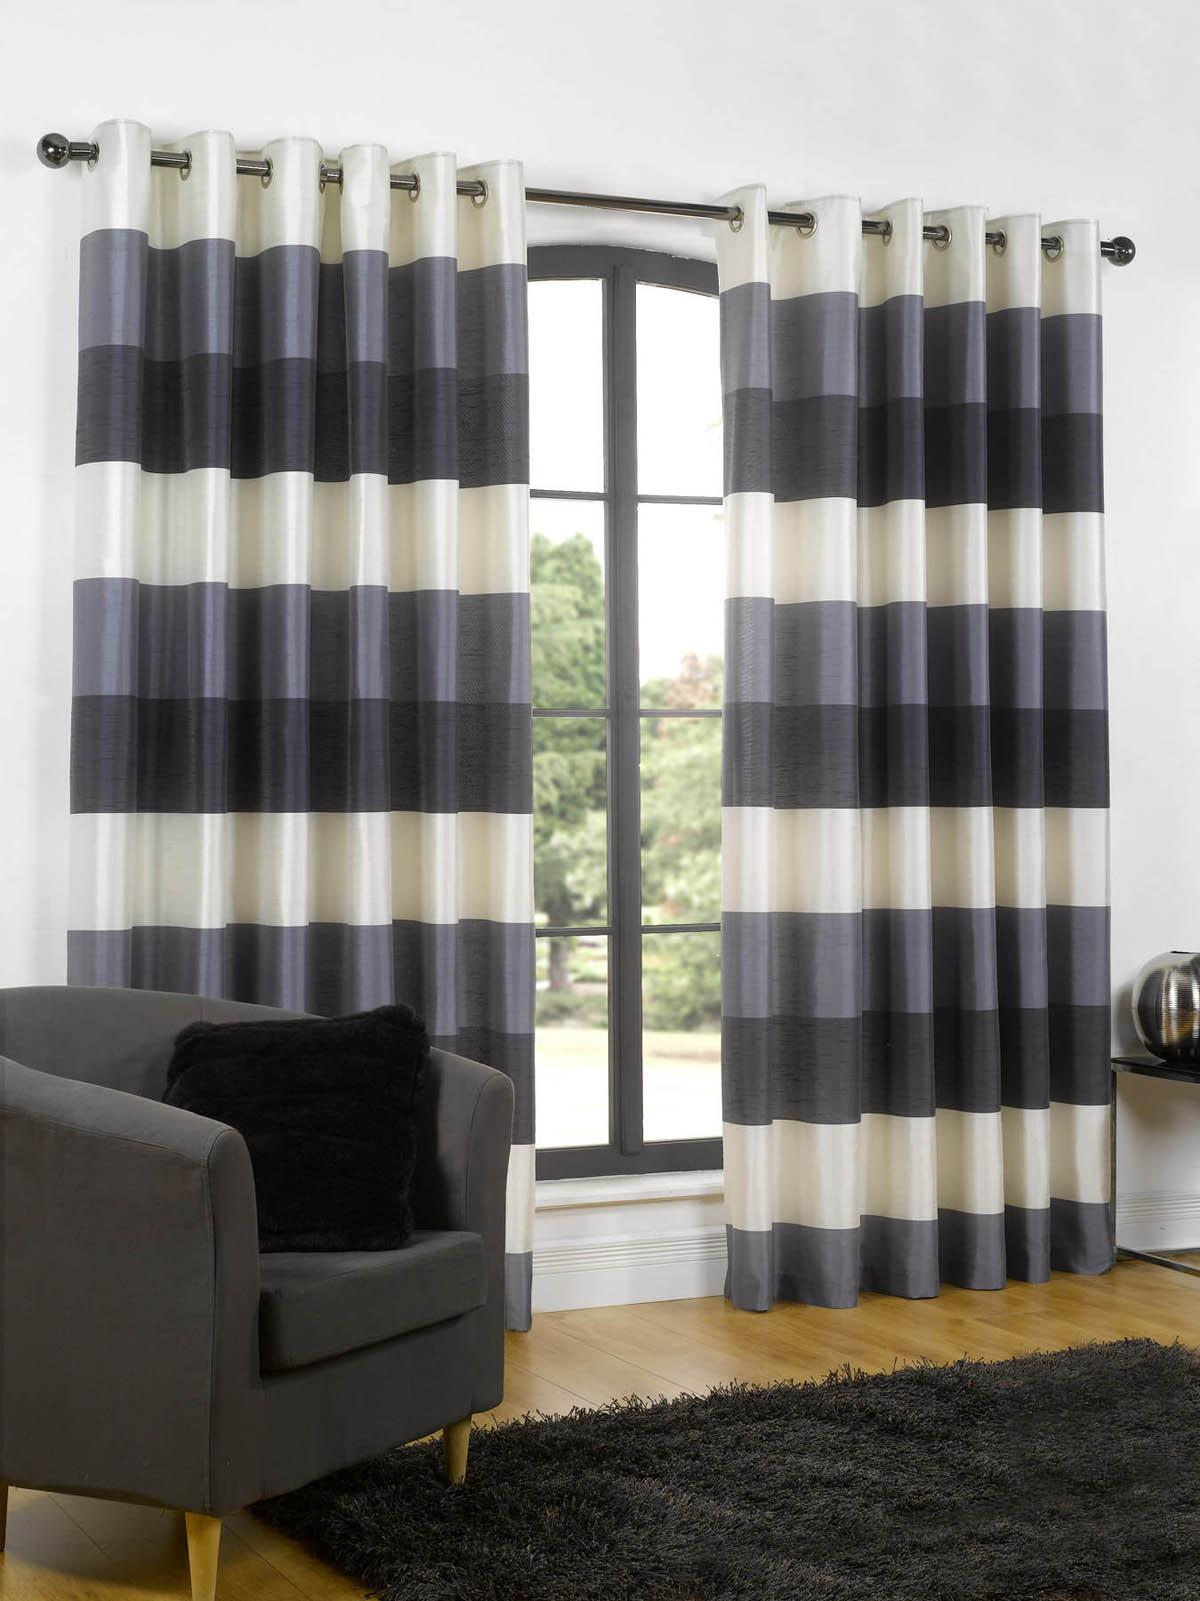 Rio Eyelet Lined Curtains Navy Free UK Delivery Terrys